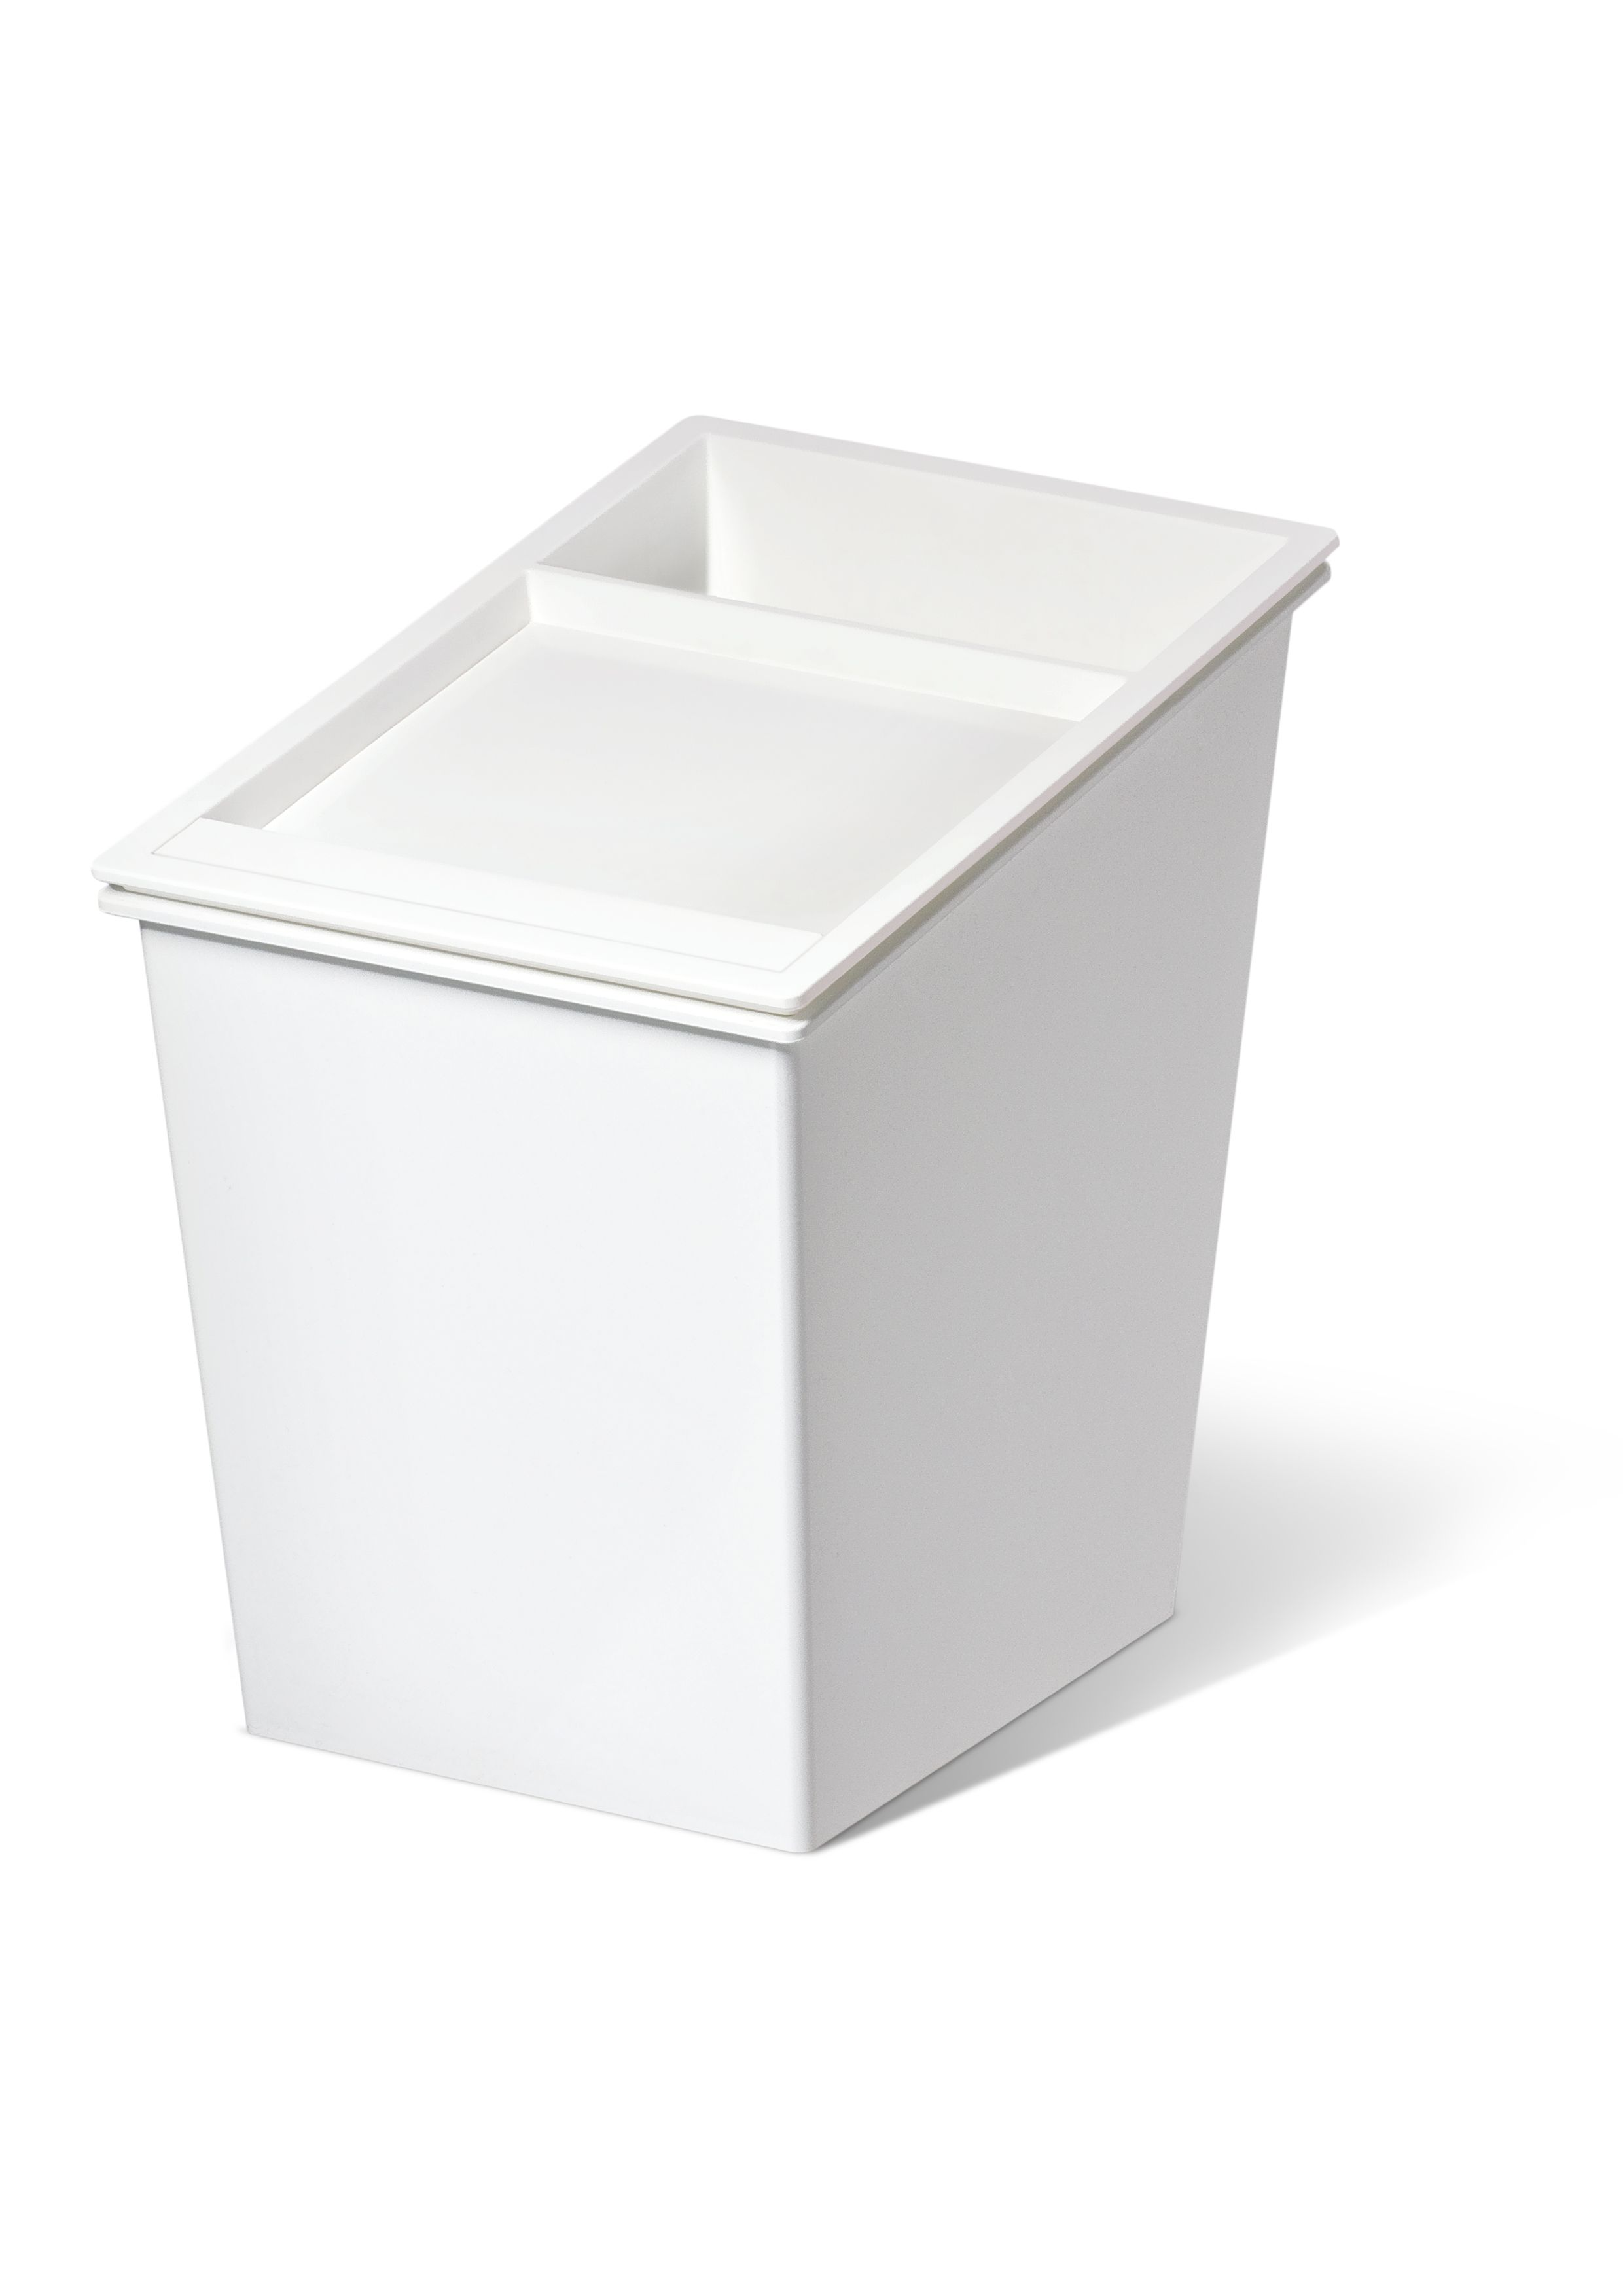 MY PERSONAL RECYCLER Waste Receptacles - http://magnusongroup.com/products/wastereceptacles/mypersonalrecycler.html